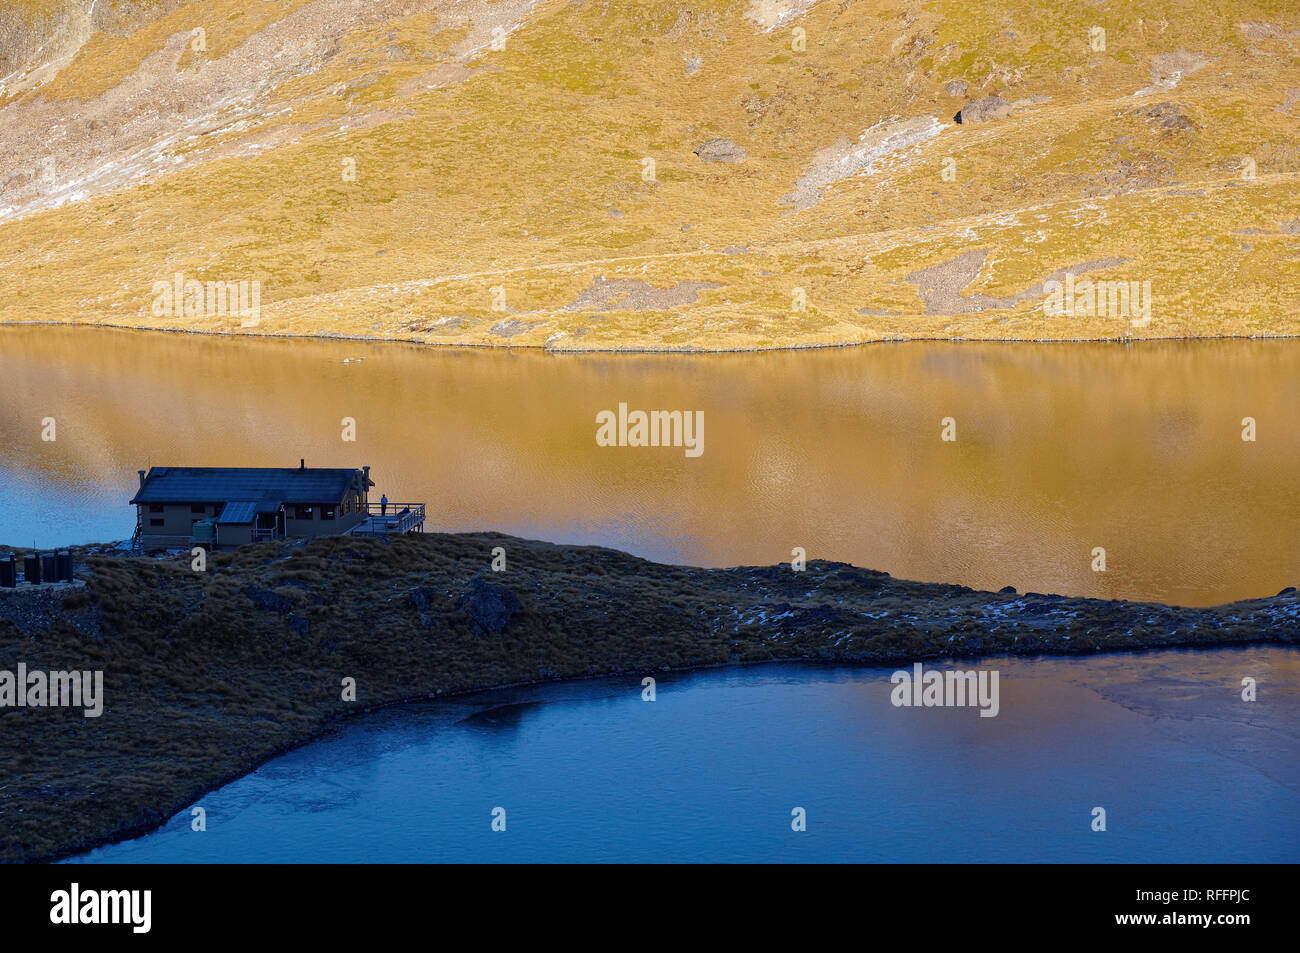 Angelus hut at sunrise, DoC hut or Dept of Conservation hut, Nelson Lakes National Park, New Zealand. - Stock Image